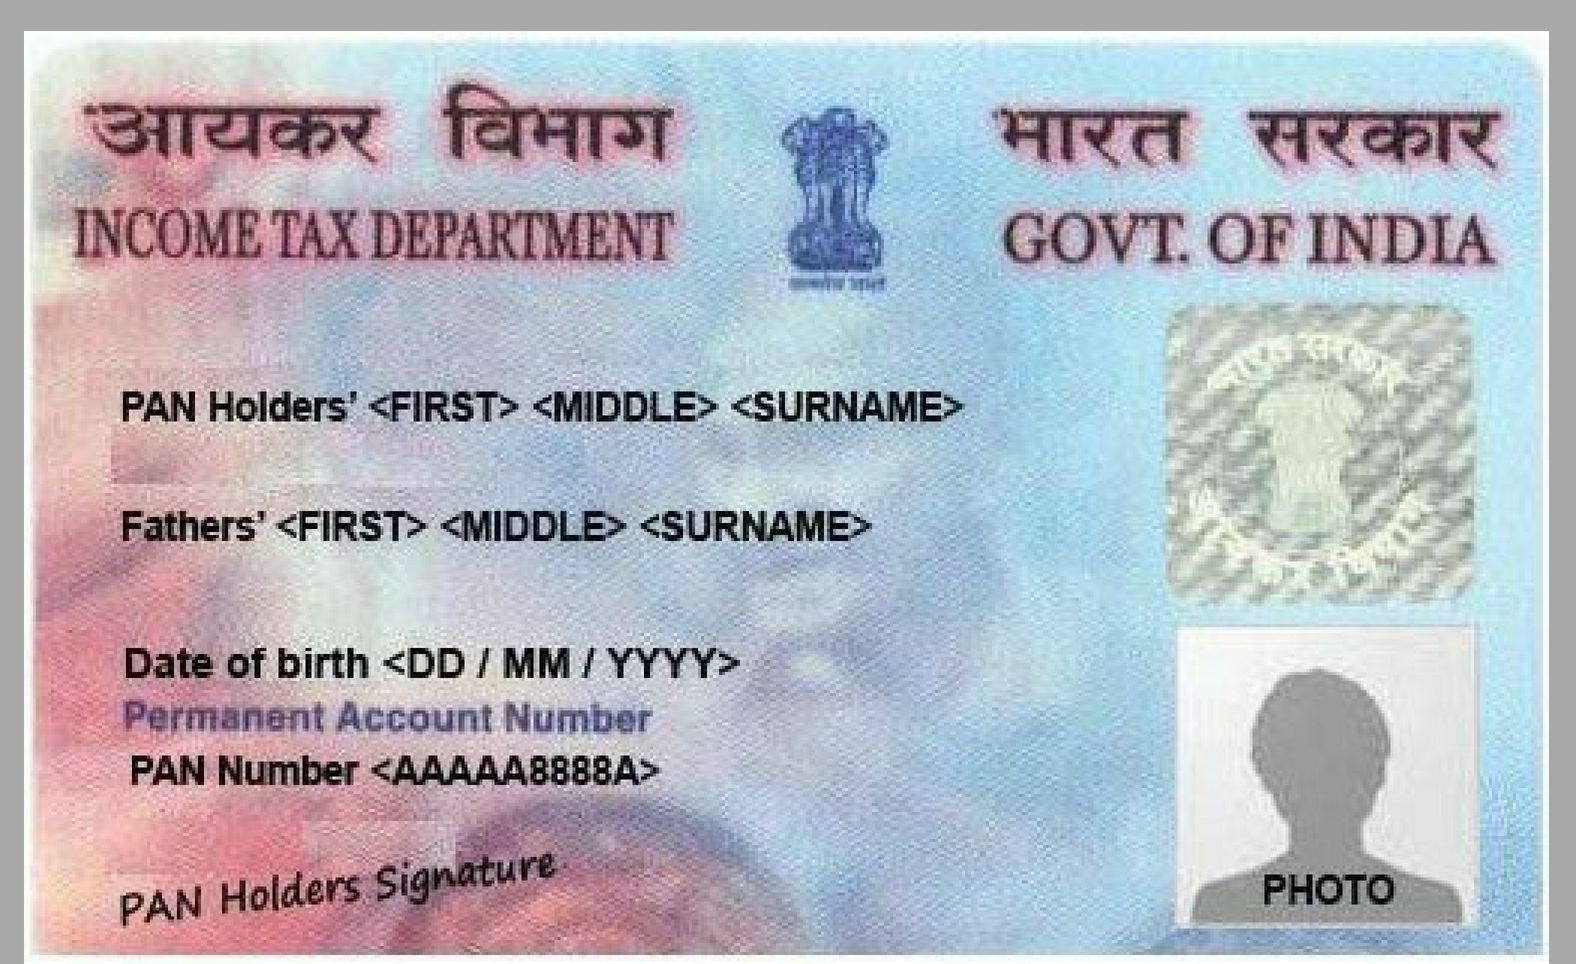 Do you want to apply for pan card it is issued by the